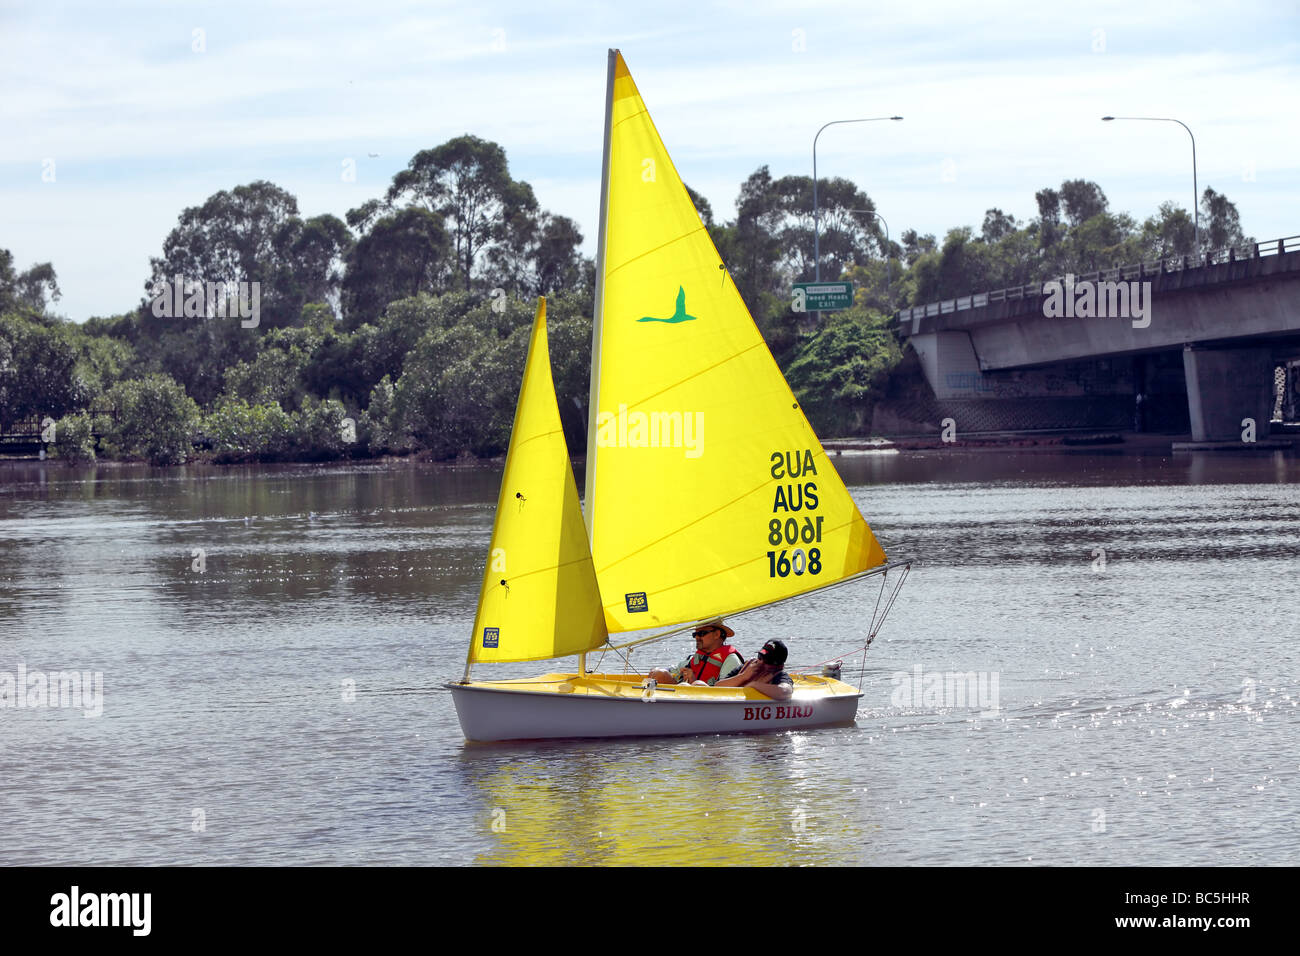 Sail boats on a river given rides to children - Stock Image